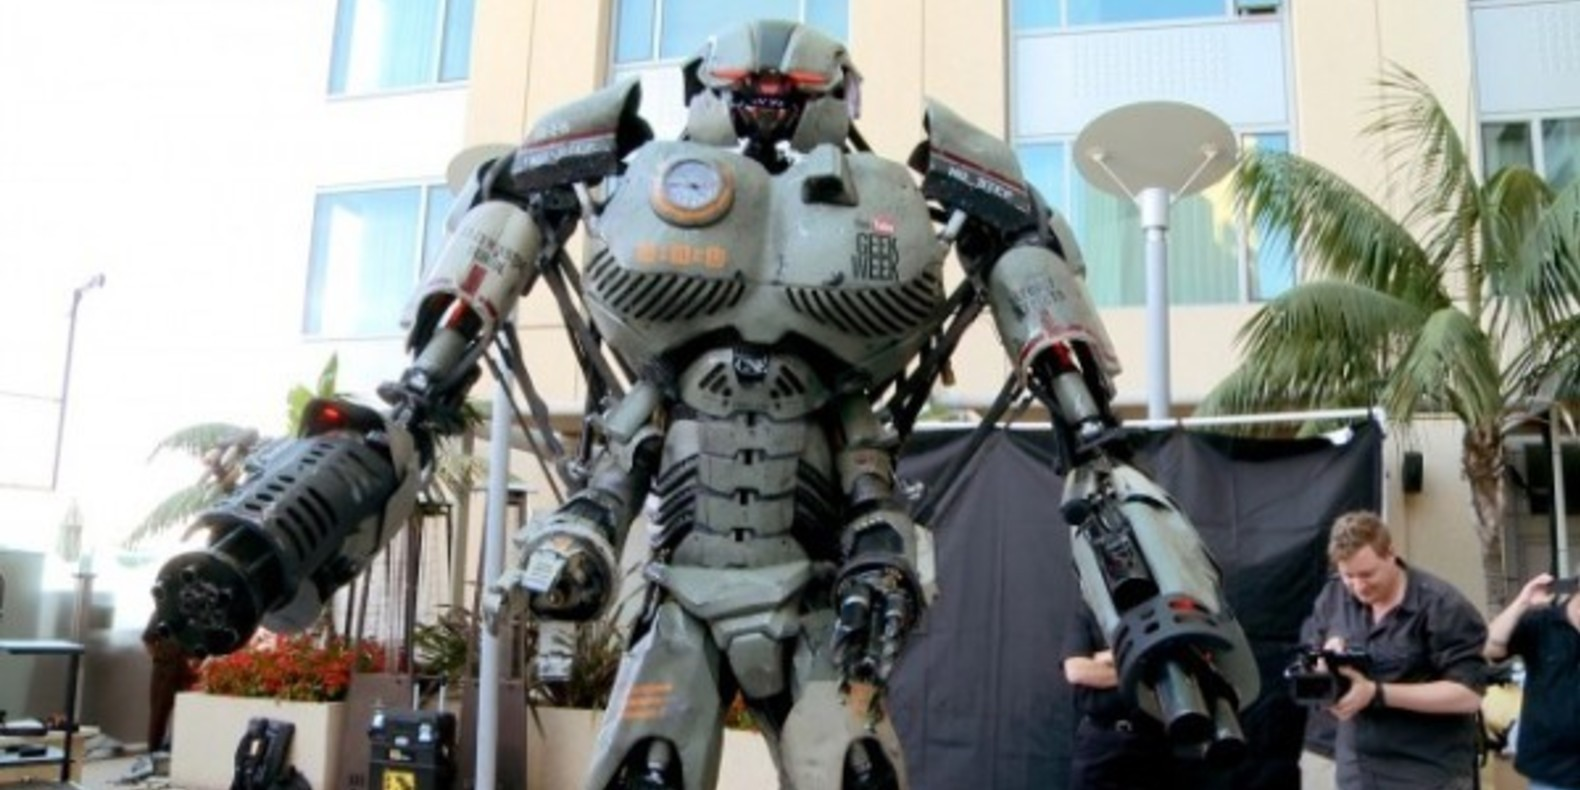 wired mech comic con san diego 2013 3D printed robot impression imprimante fichier cults 1